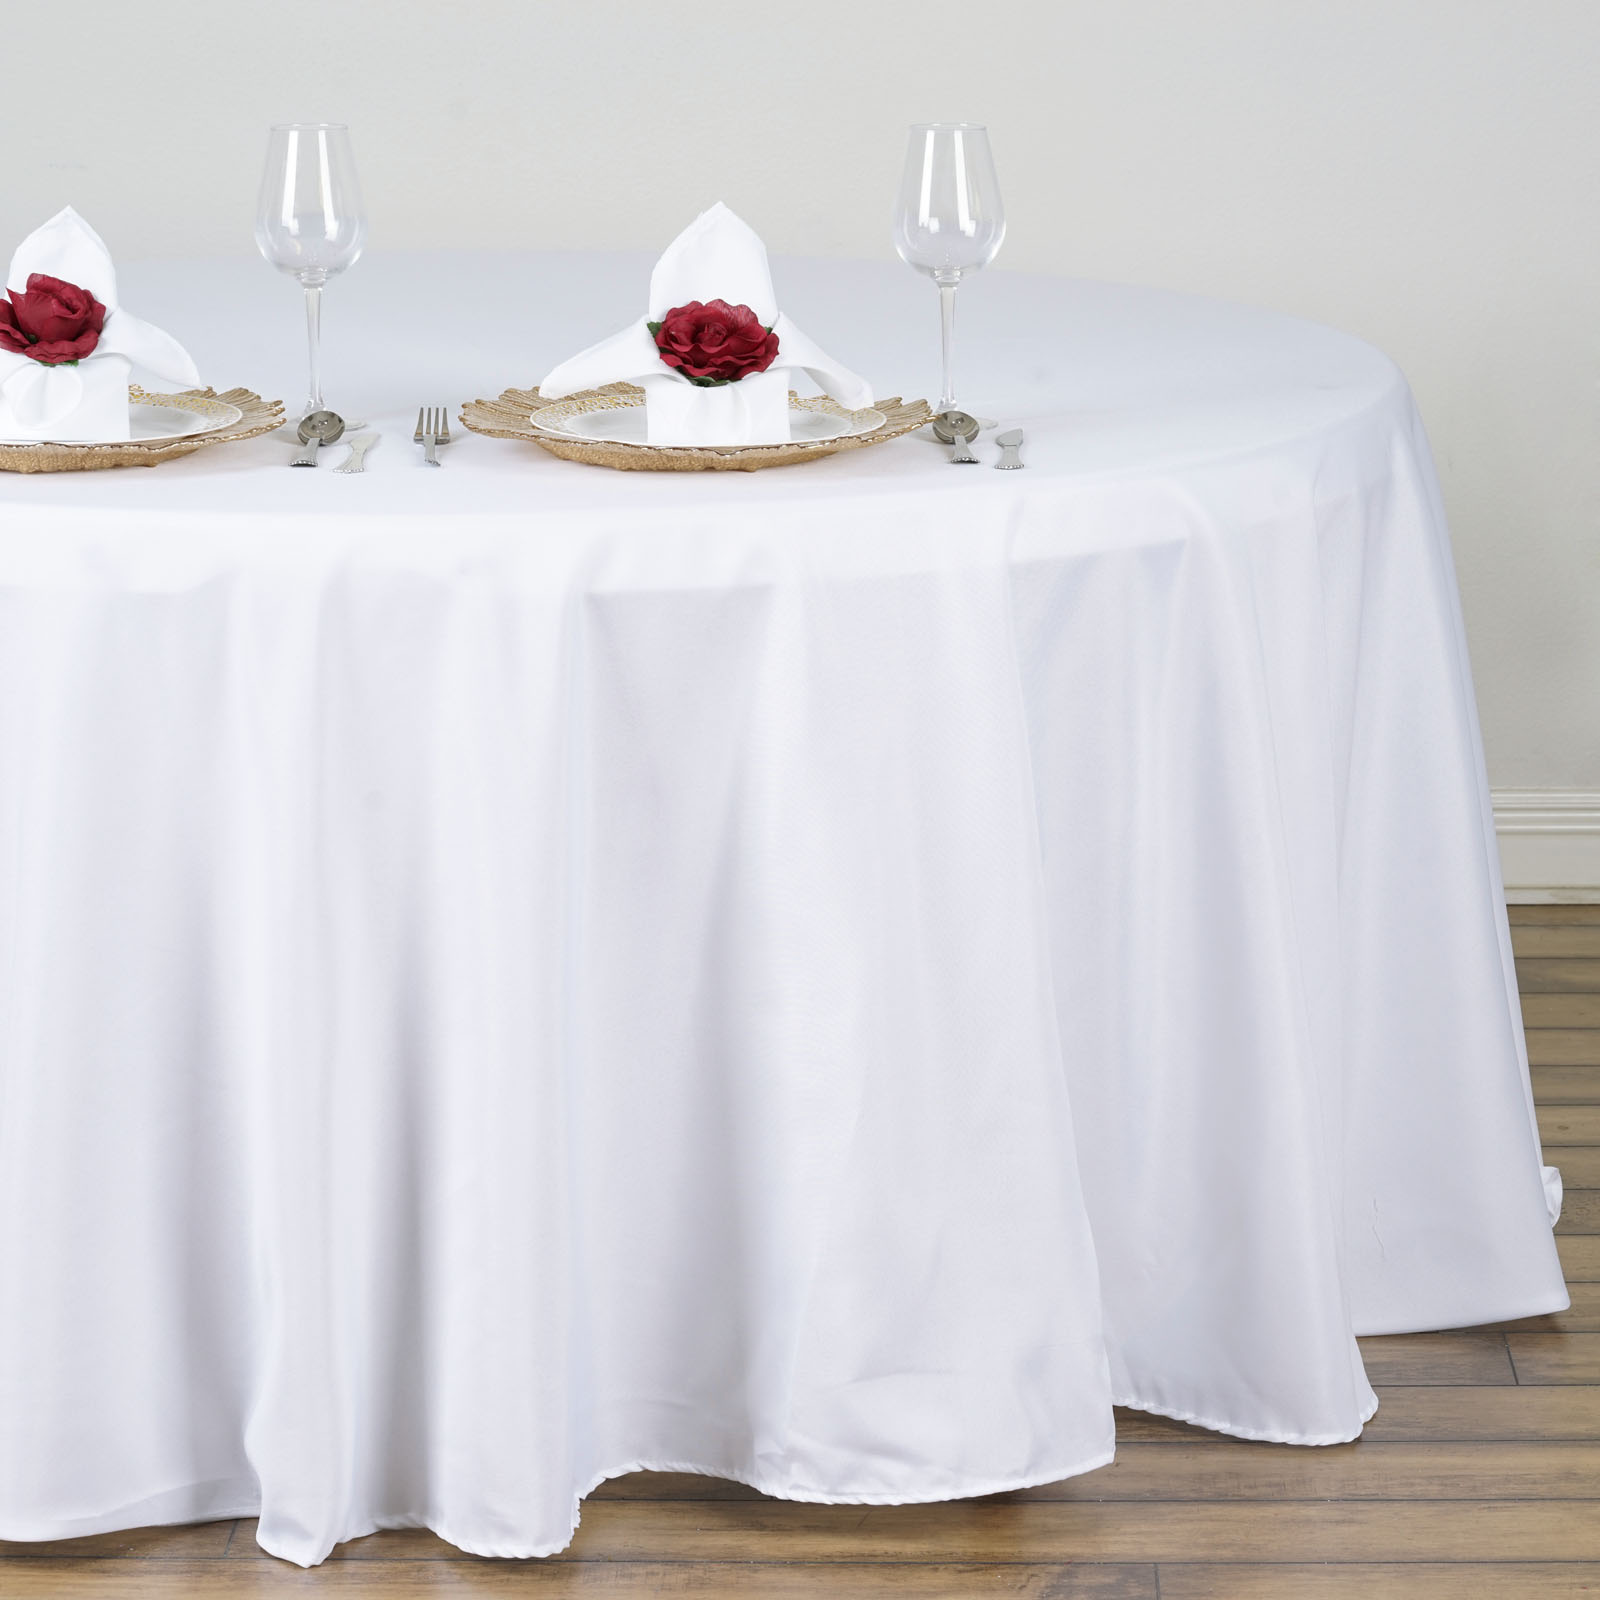 132 round polyester tablecloths for wedding party linens